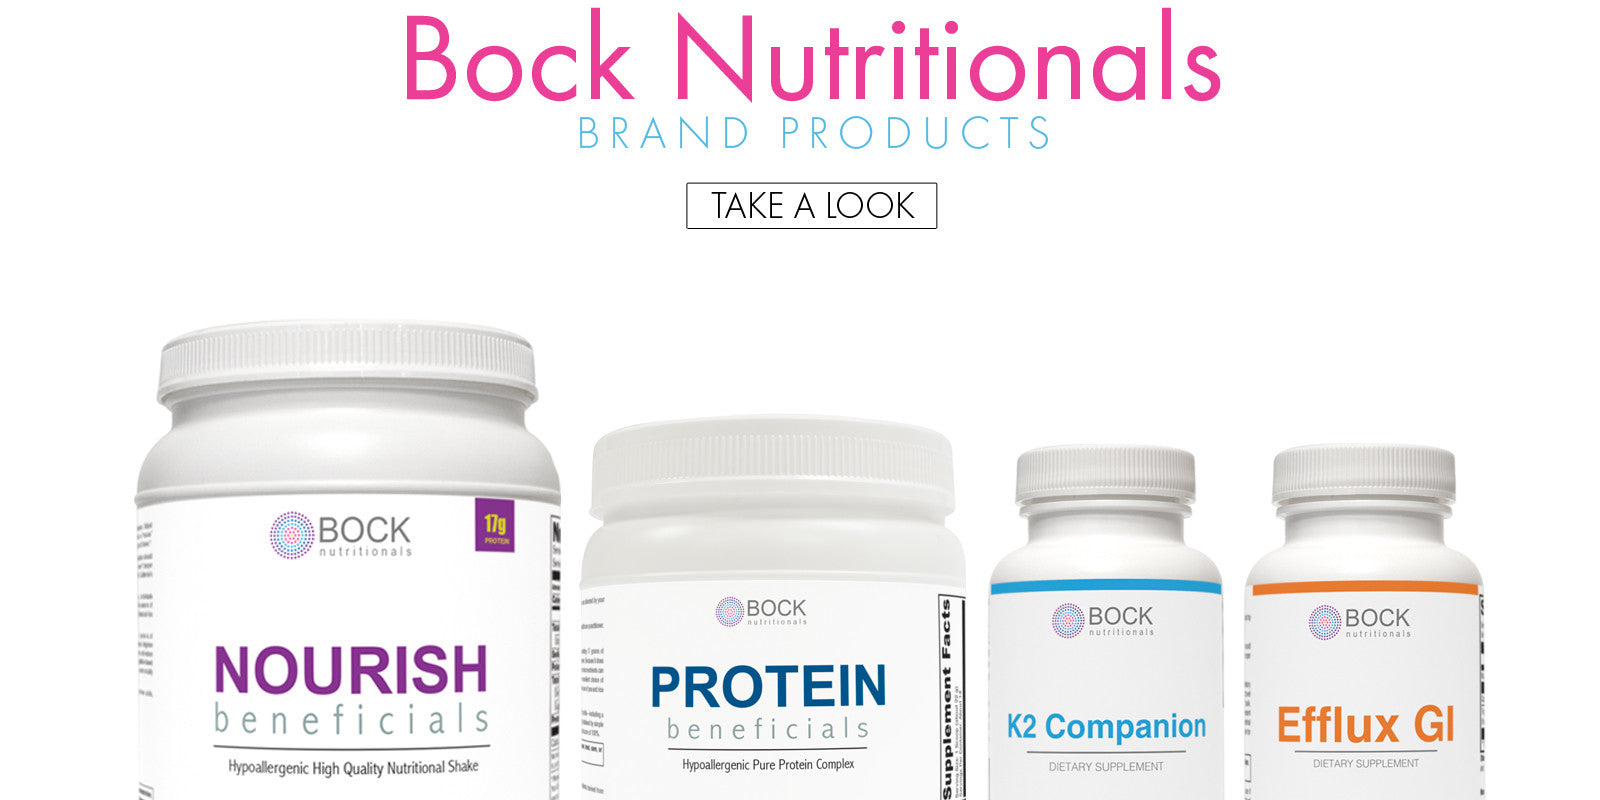 Bock Nutritionals Brand